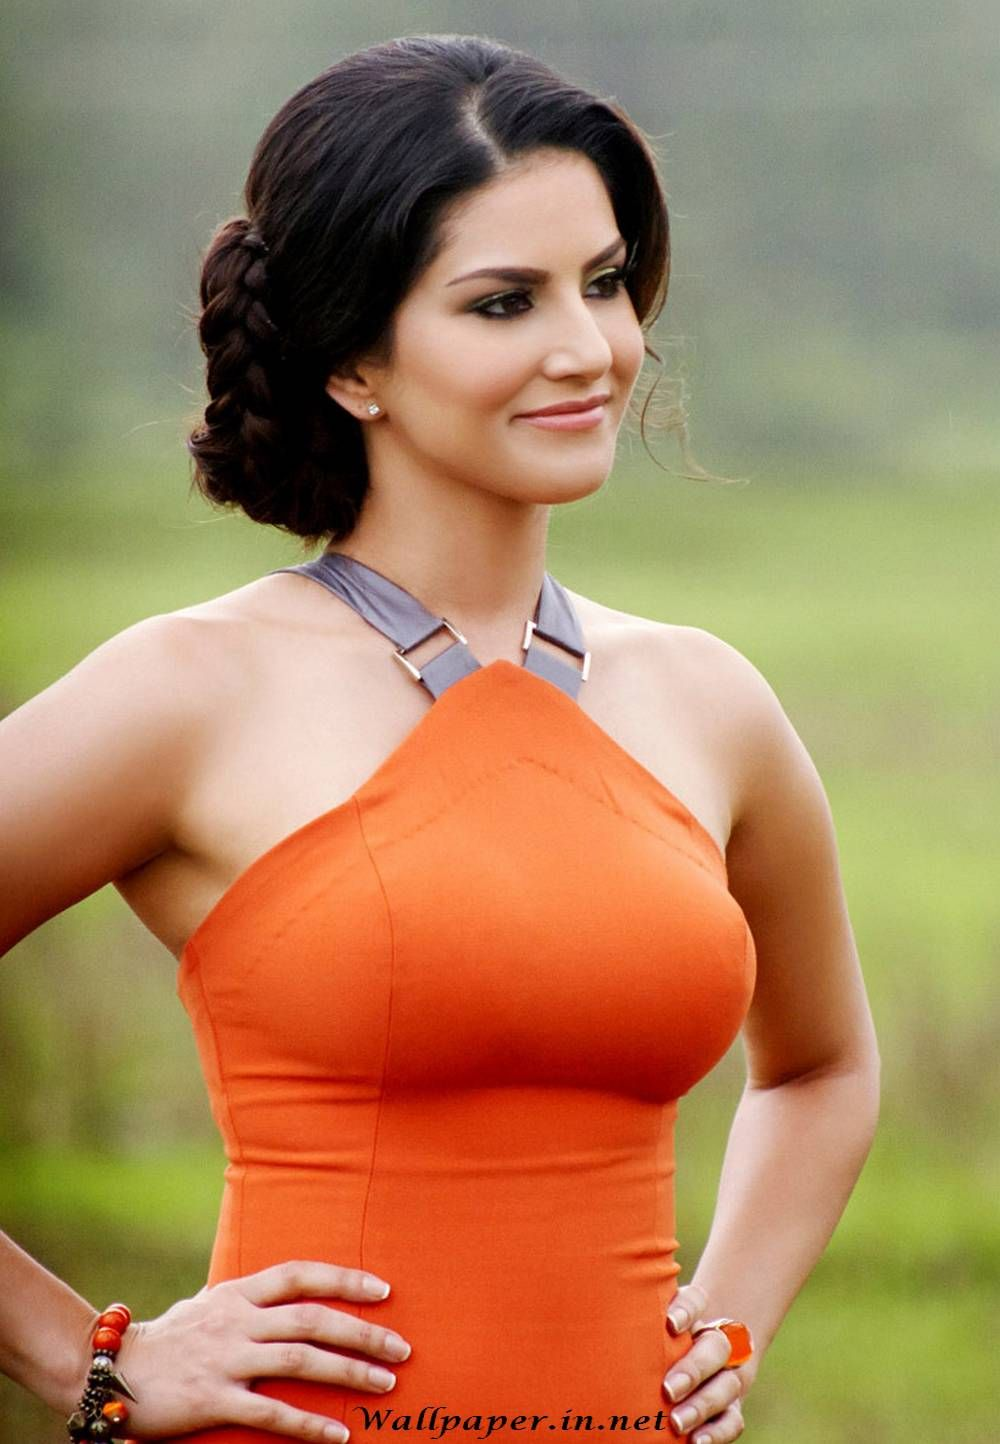 Sunny Leone Hot Sexy Wallpapers Pictures Images Photos